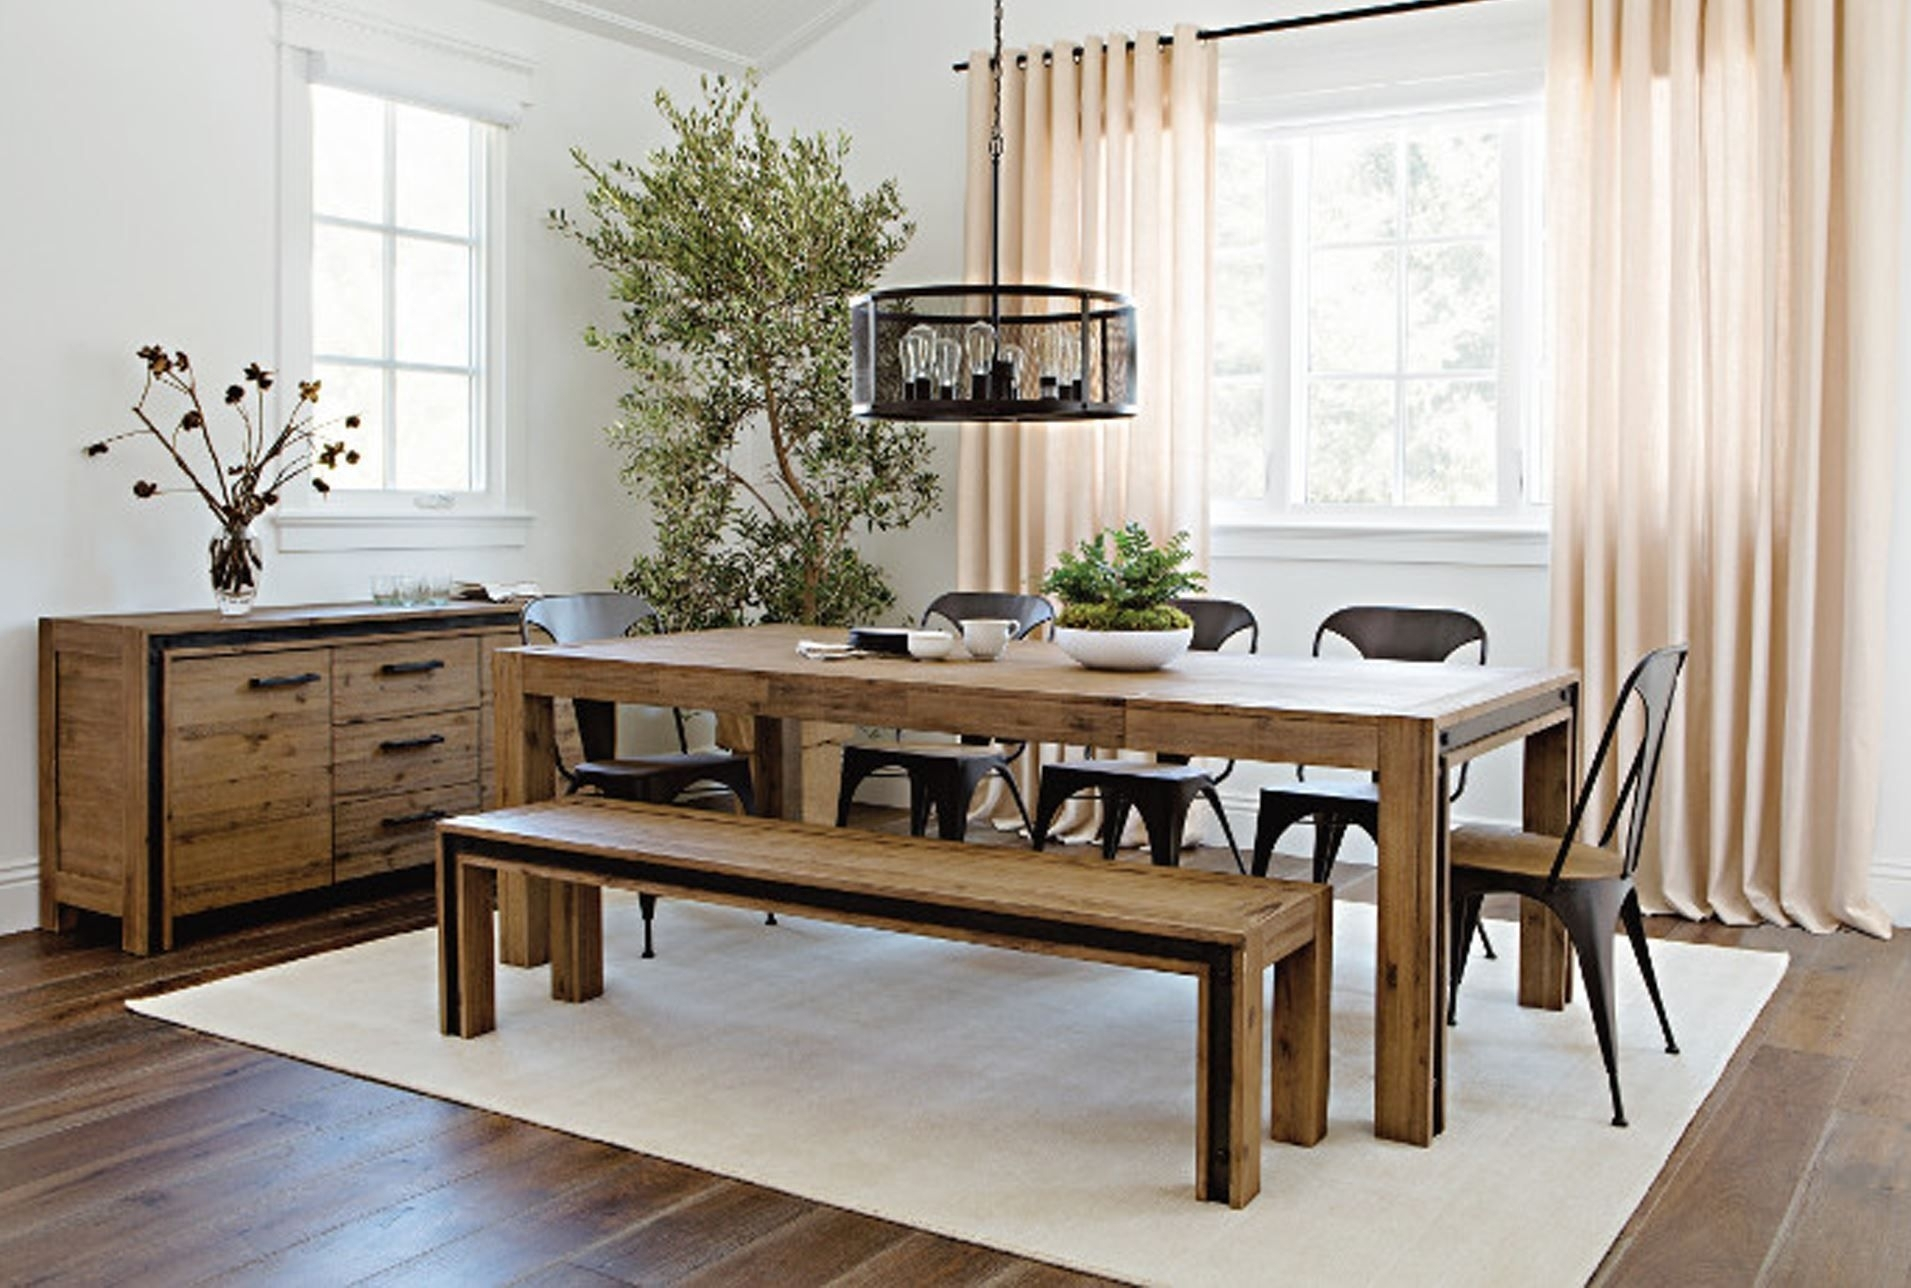 Amos Extension Dining Table House Decor With Living Spaces Dining With Regard To Most Current Chapleau Extension Dining Tables (View 18 of 20)